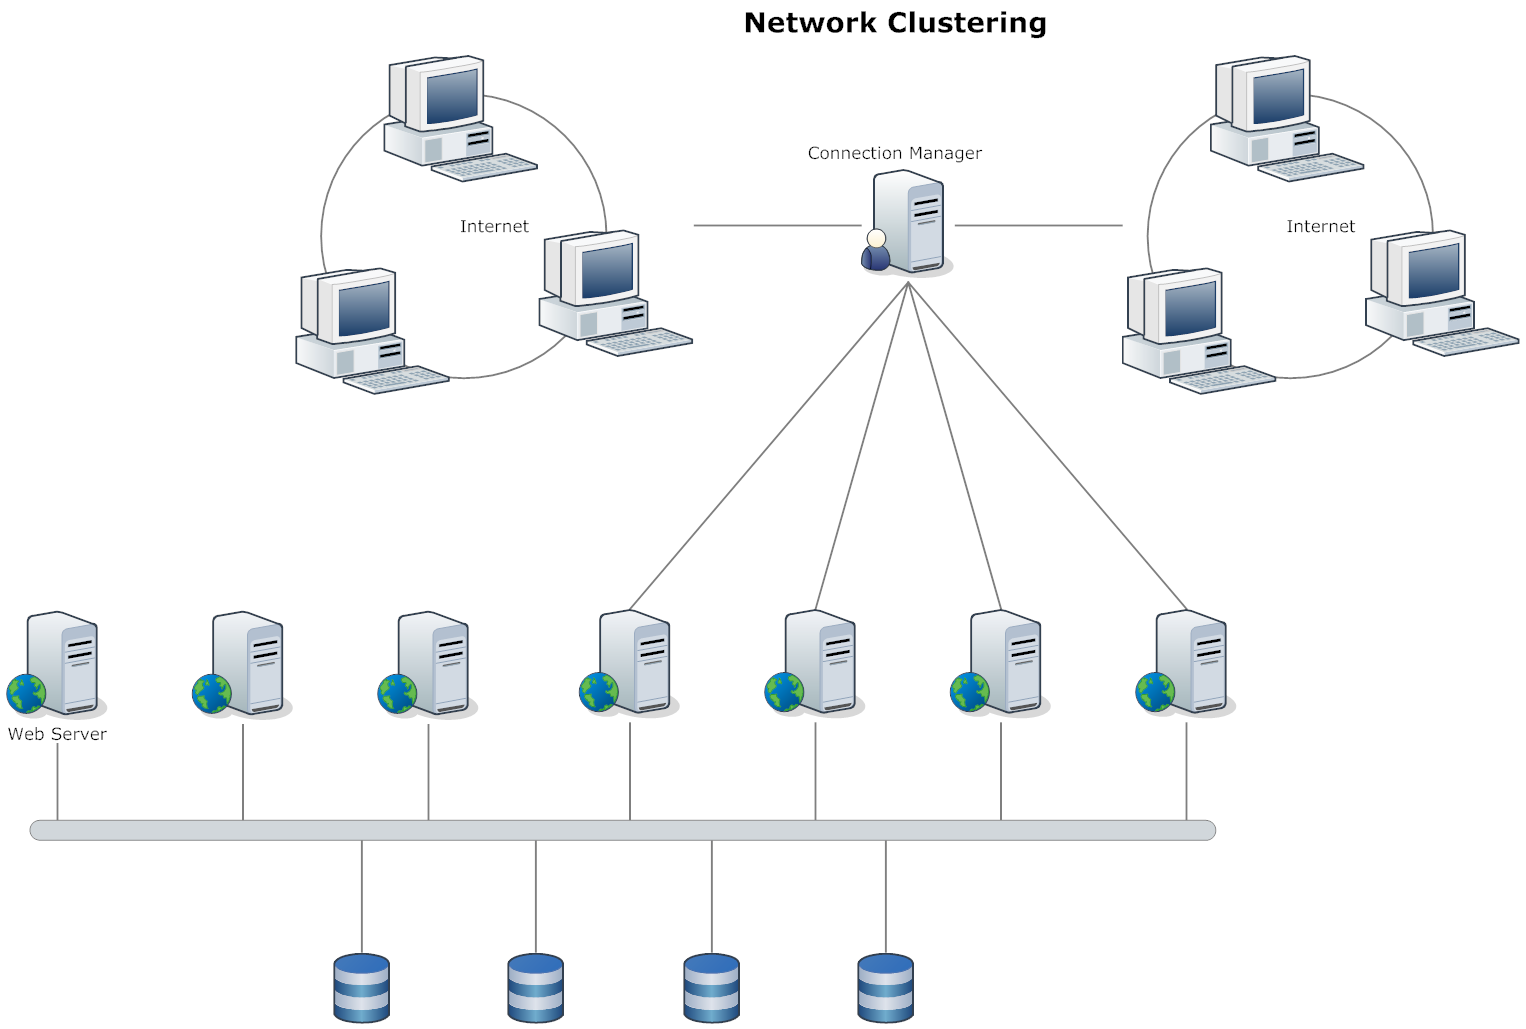 images about network diagrams on pinterest   cloud computing        images about network diagrams on pinterest   cloud computing  software and network architecture